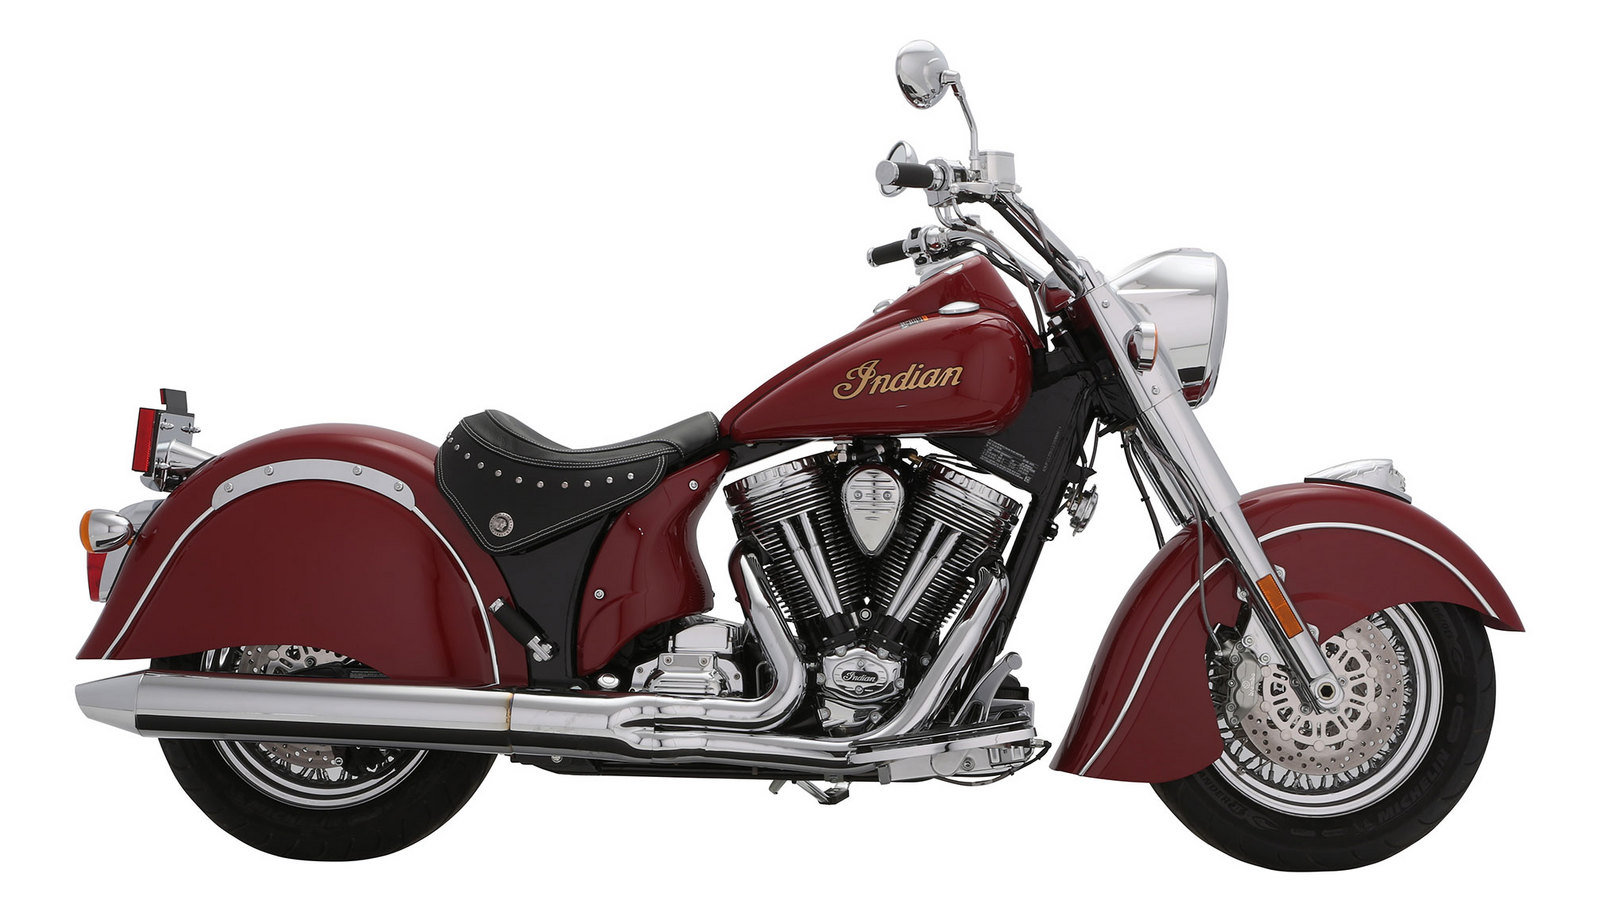 indian chief classic motorcycle motorcycles moto wallpapers specs topspeed